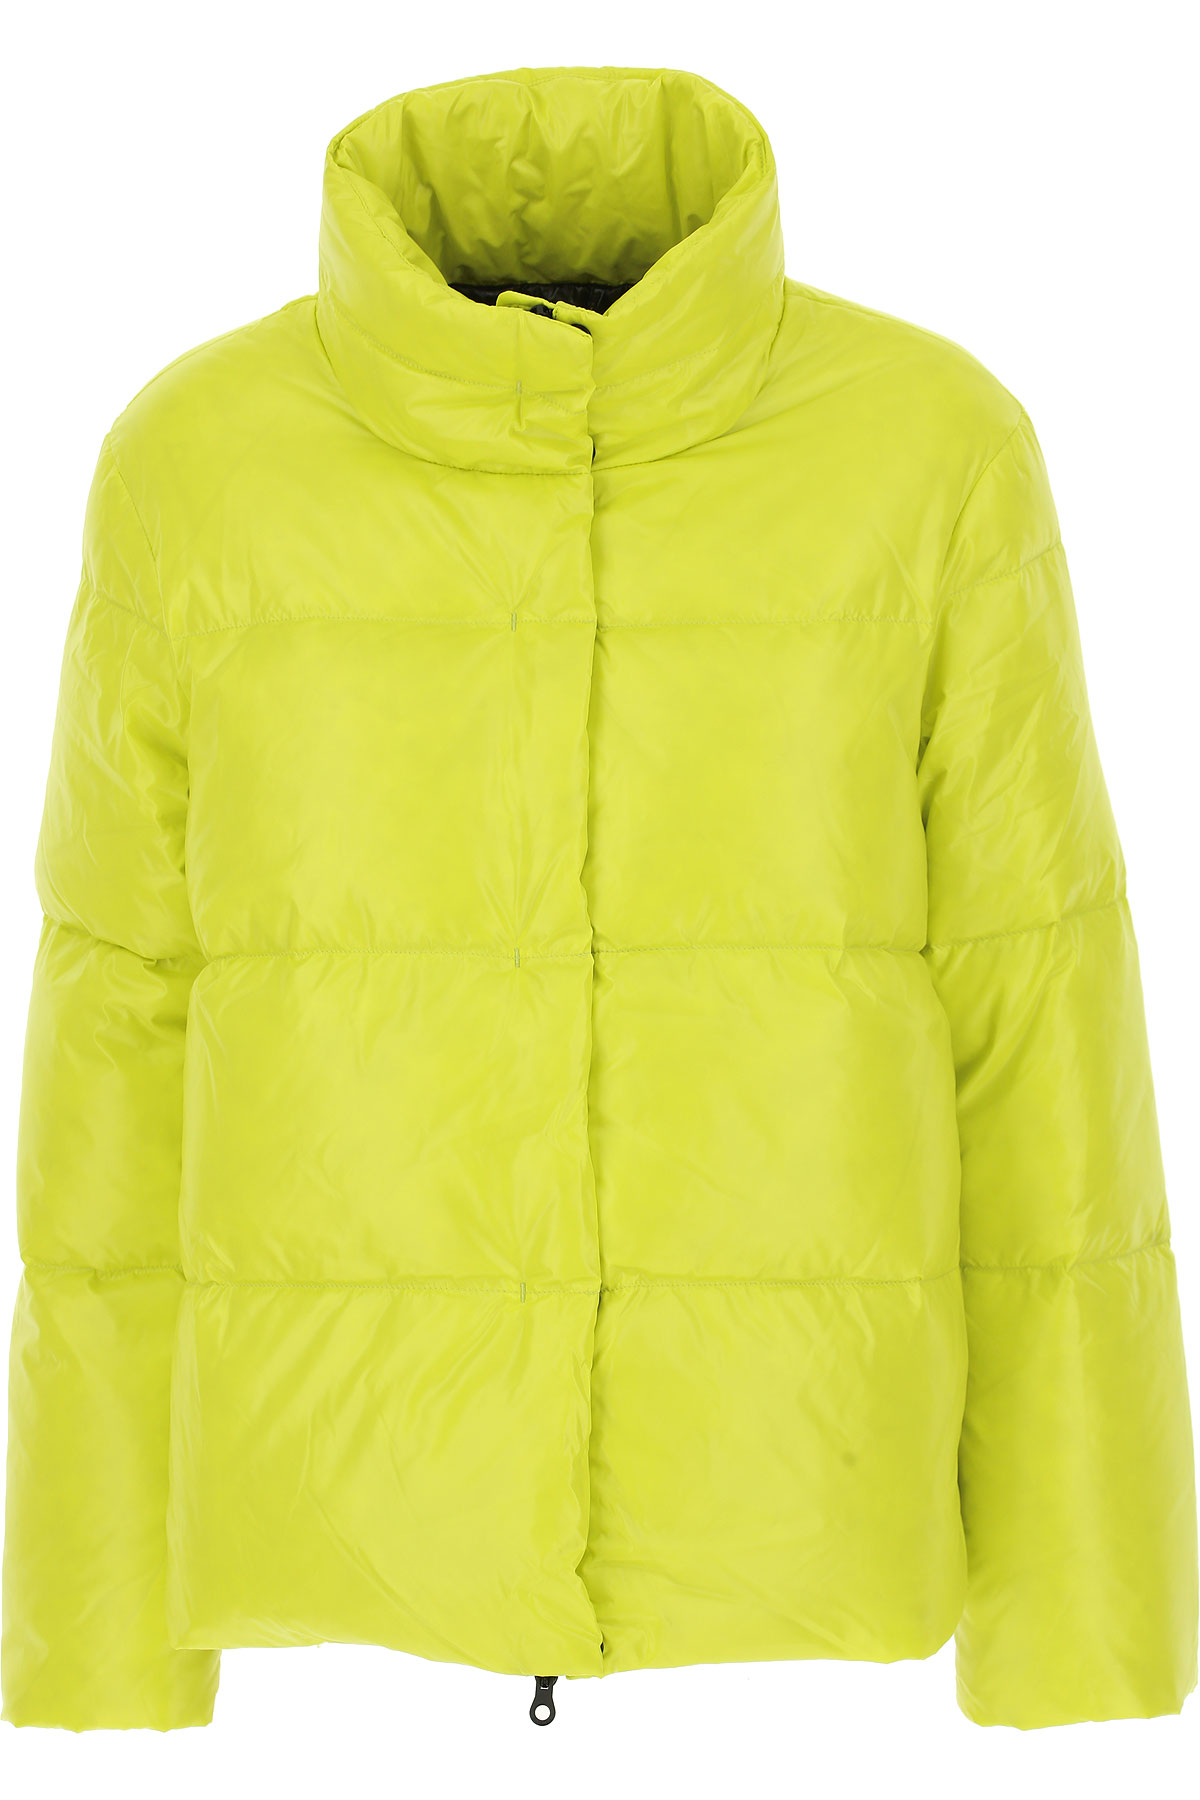 Image of Duvetica Down Jacket for Women, Puffer Ski Jacket, Sulphur, Down, 2017, 4 6 8